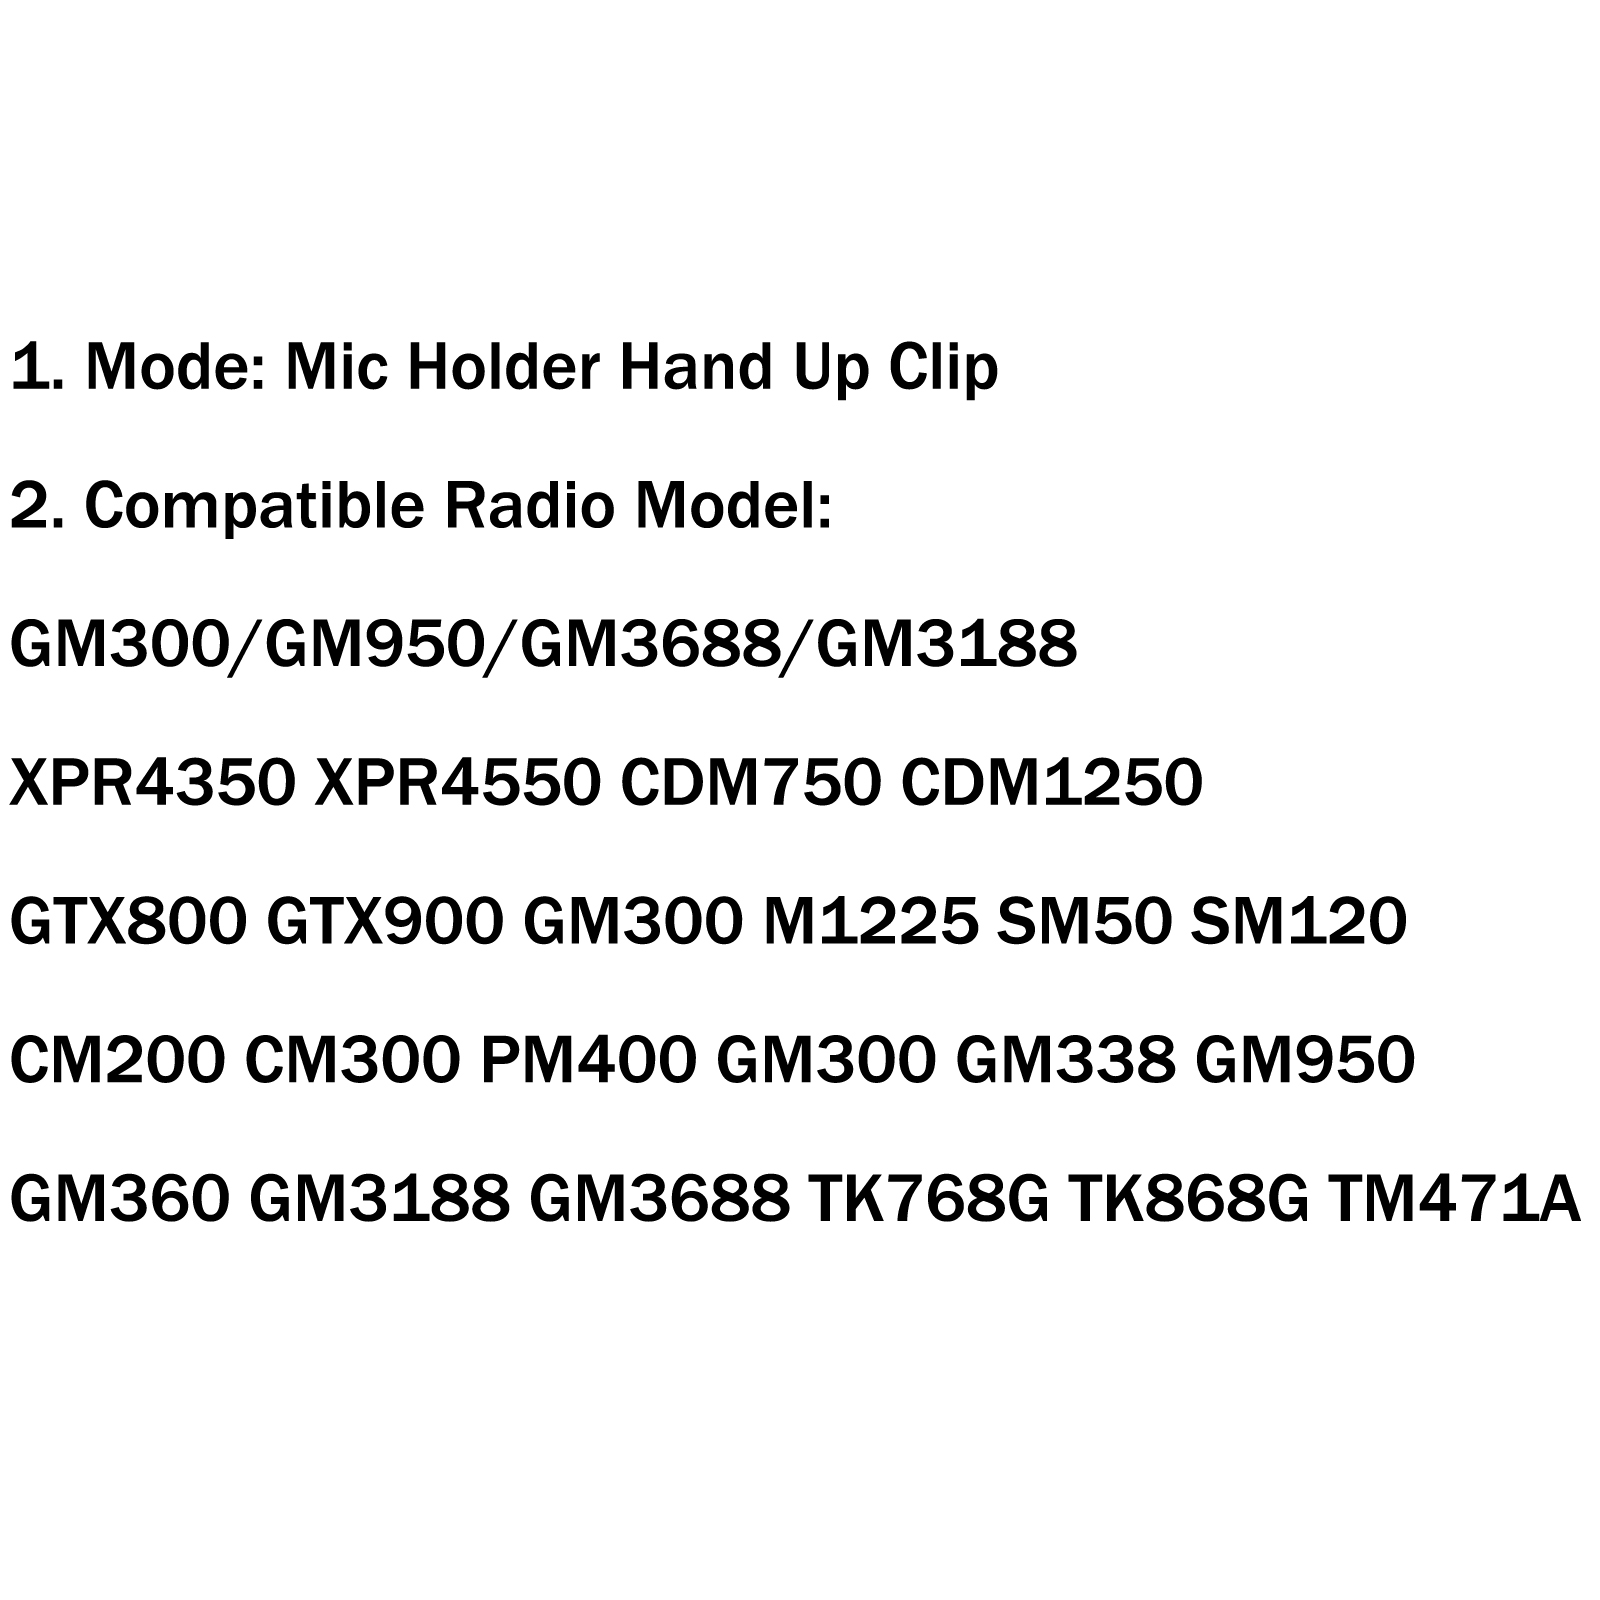 Mic Holder Hand Up Clip Pour Motorola Cb Kenwood Hln Gm300 950